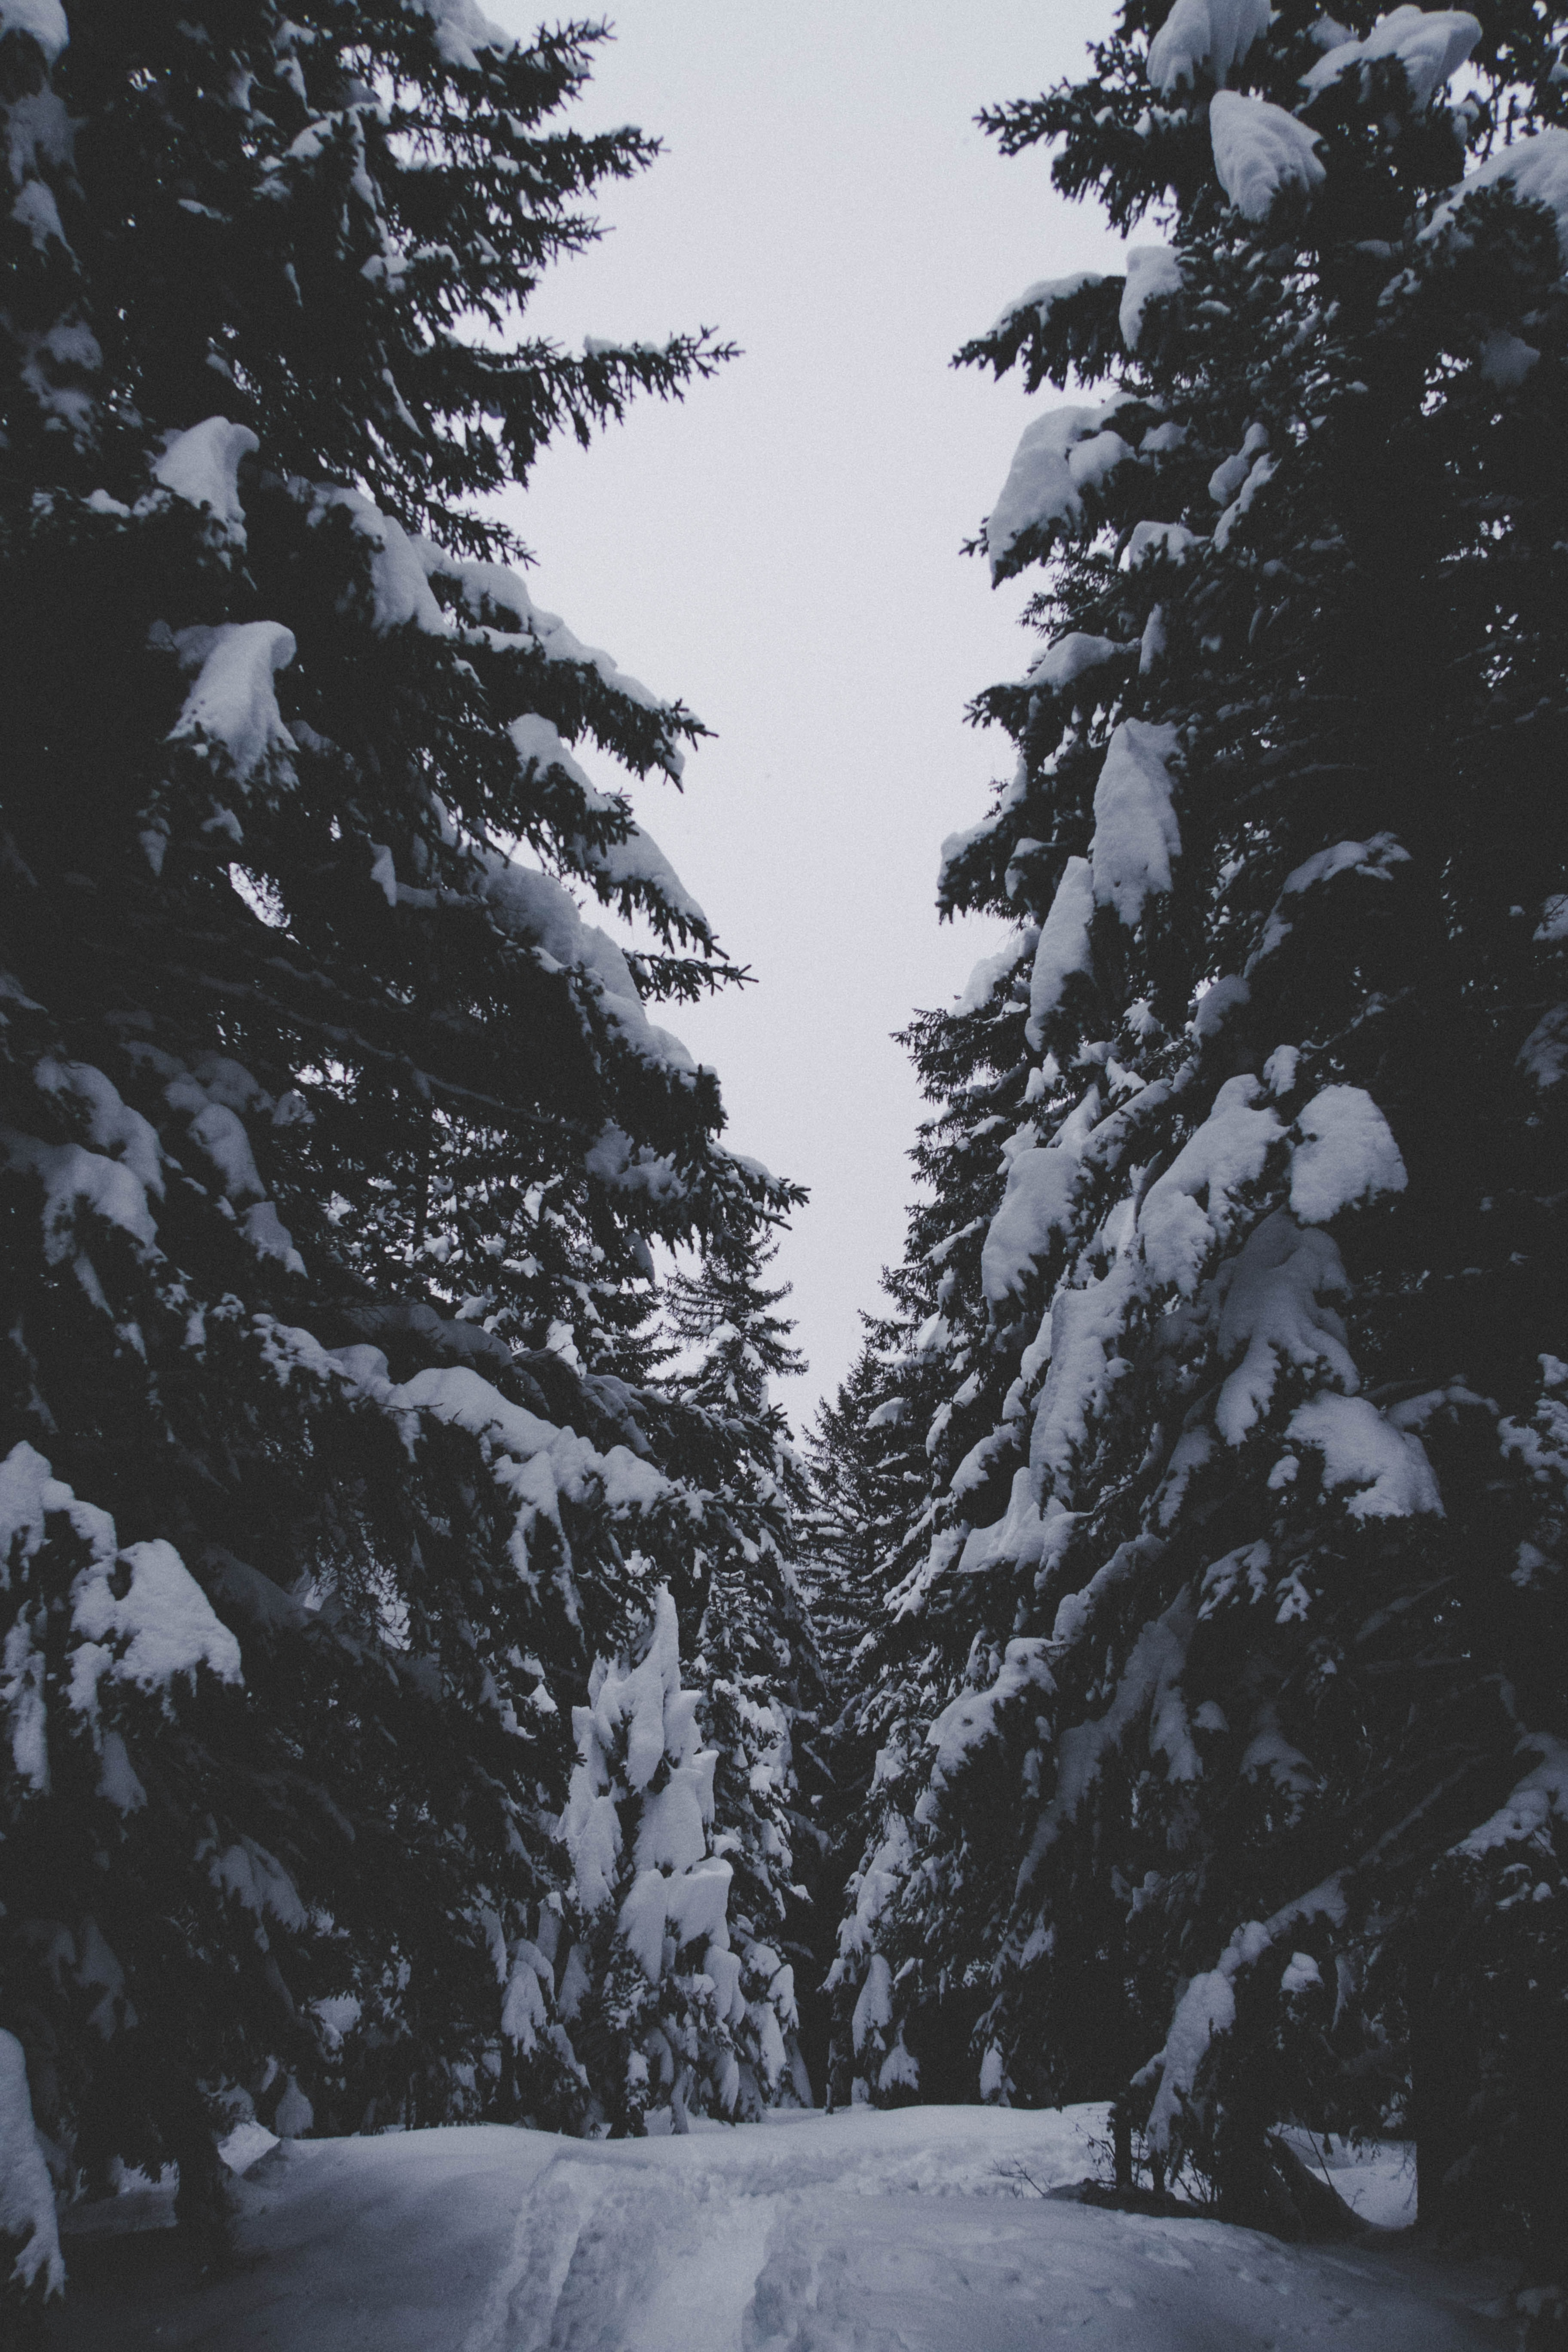 snow covered trees under clear sky